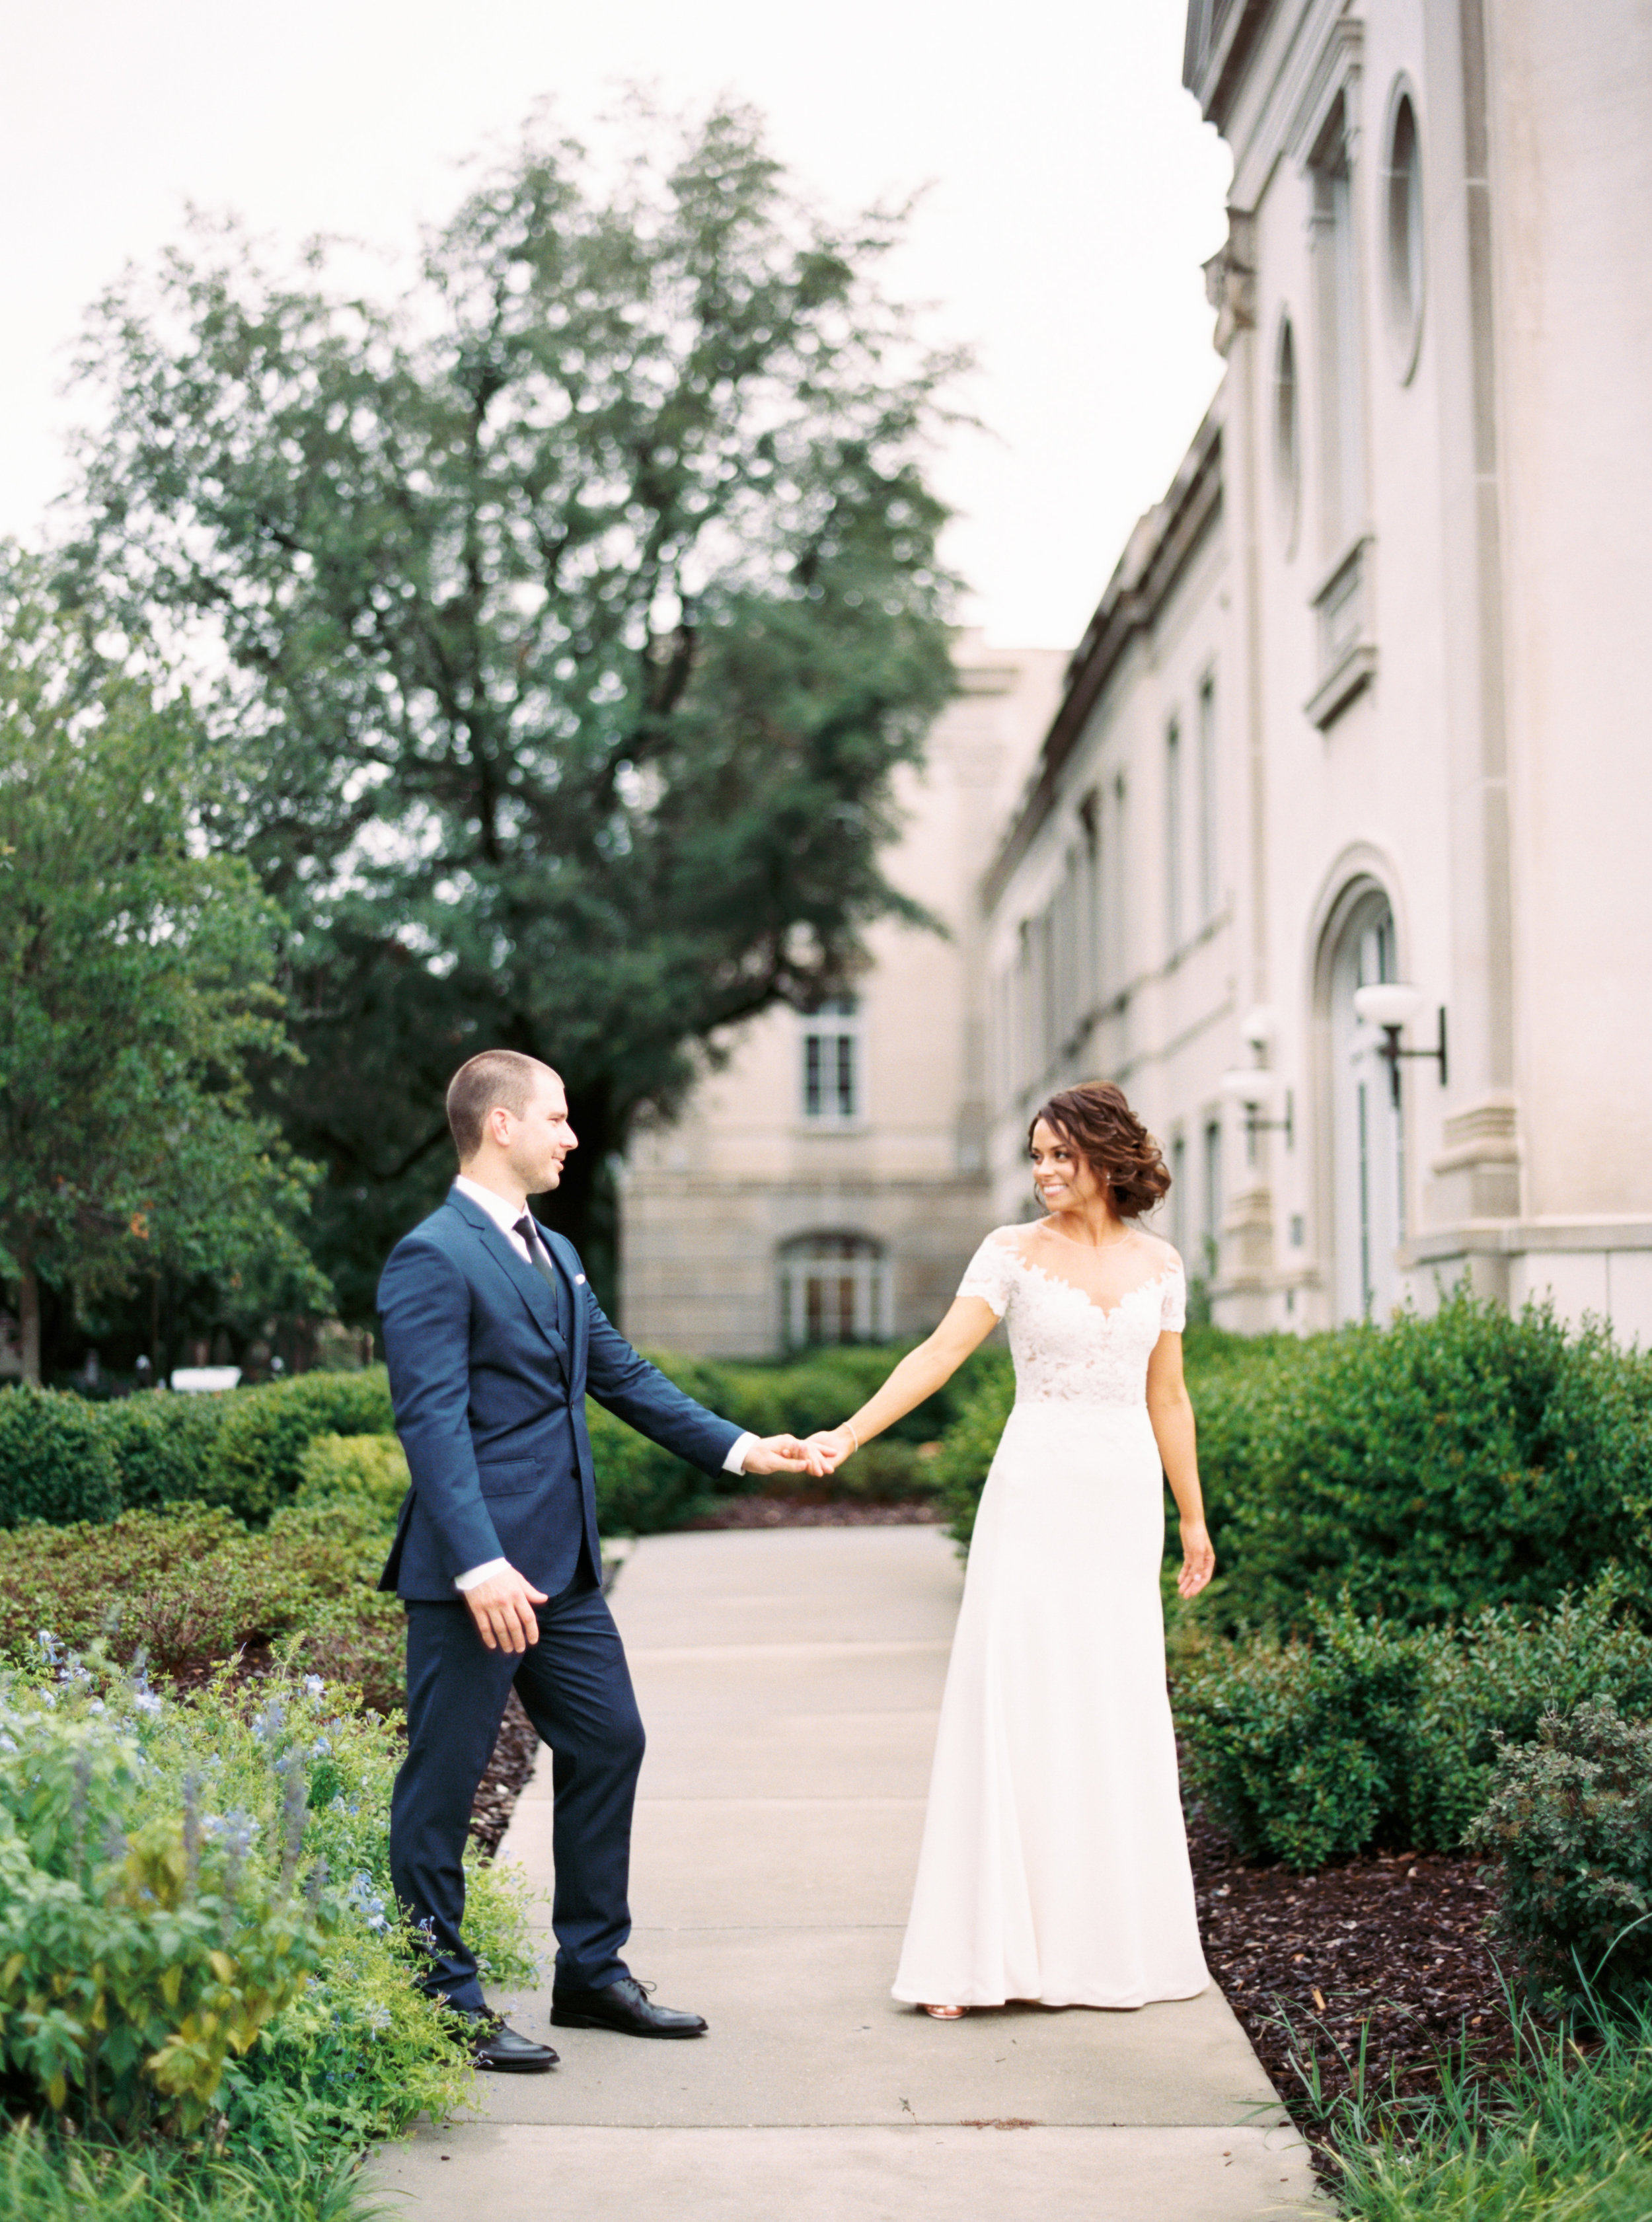 Charleston wedding at The Gadsden House by Ava Moore Photography